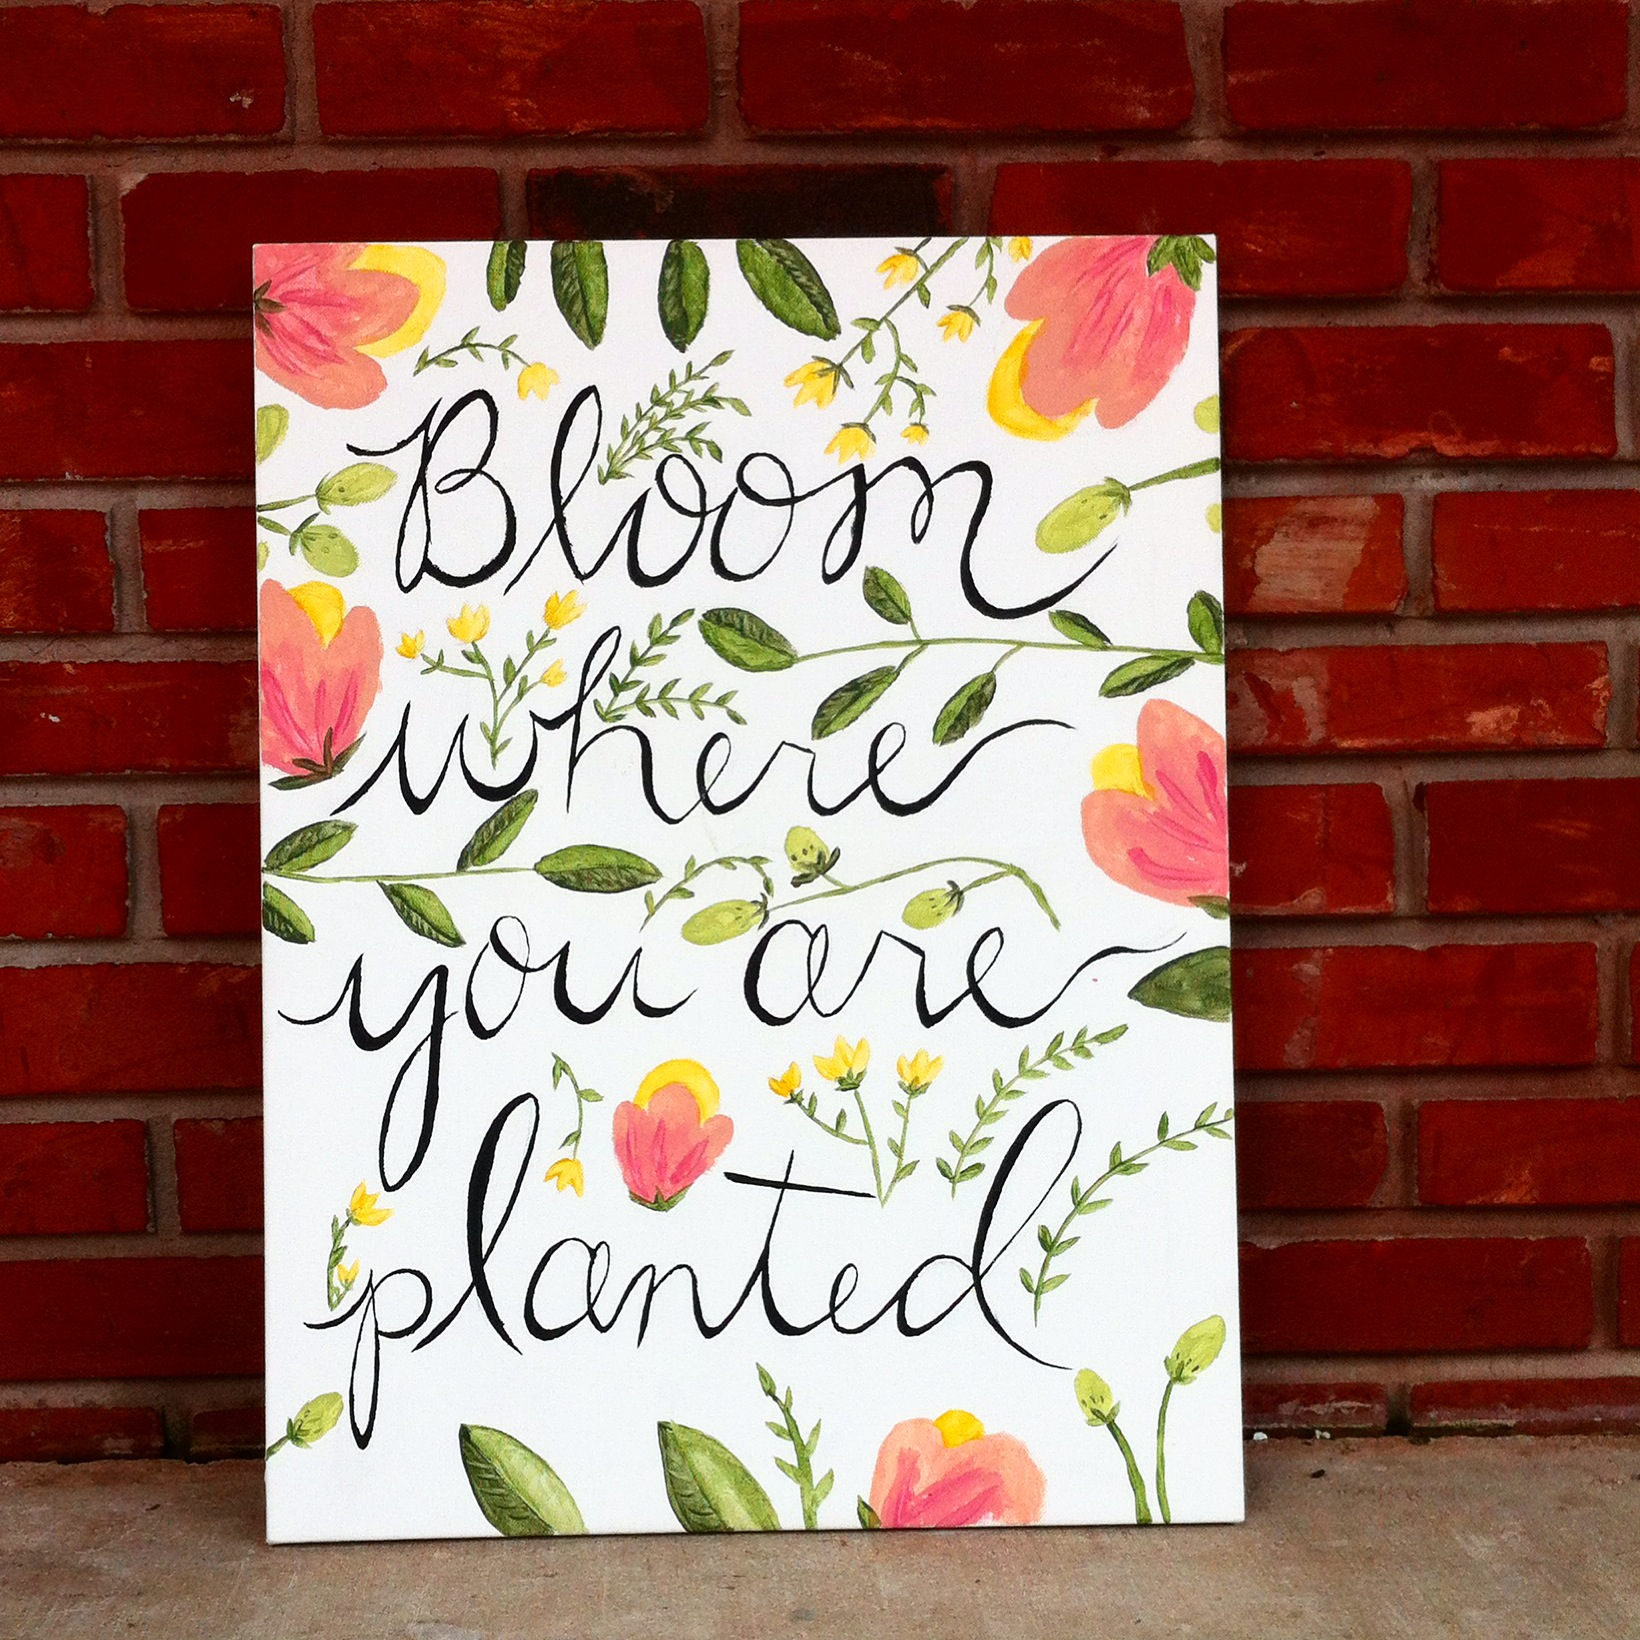 Bloom where you are planted vitaleigh